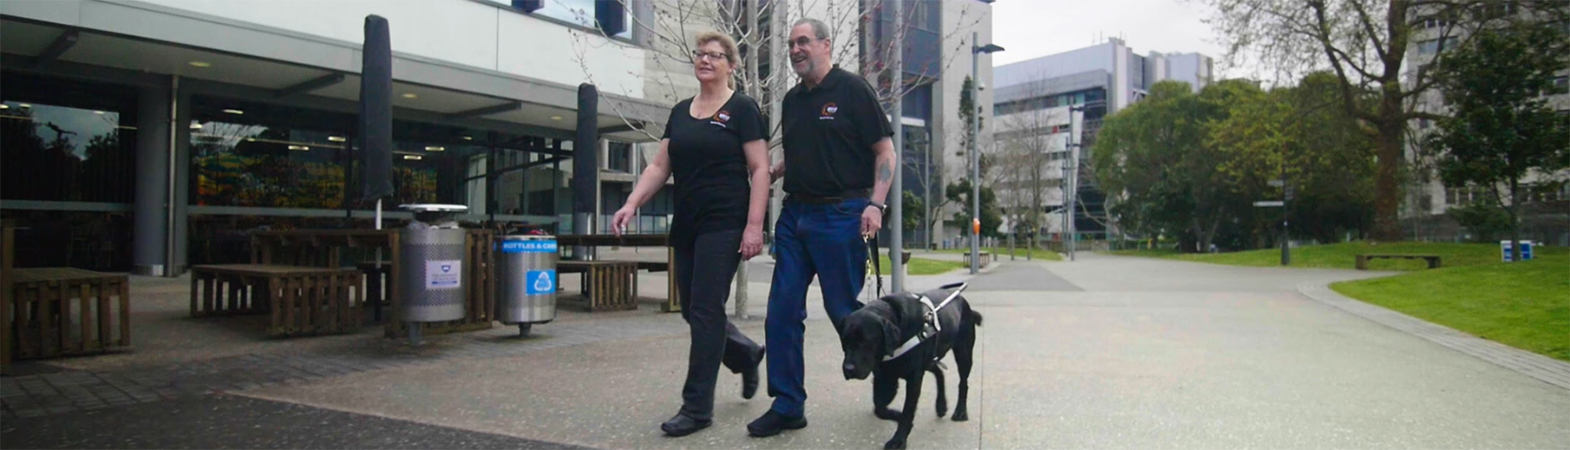 A woman is guiding a blind man with a guide dog to walk on street